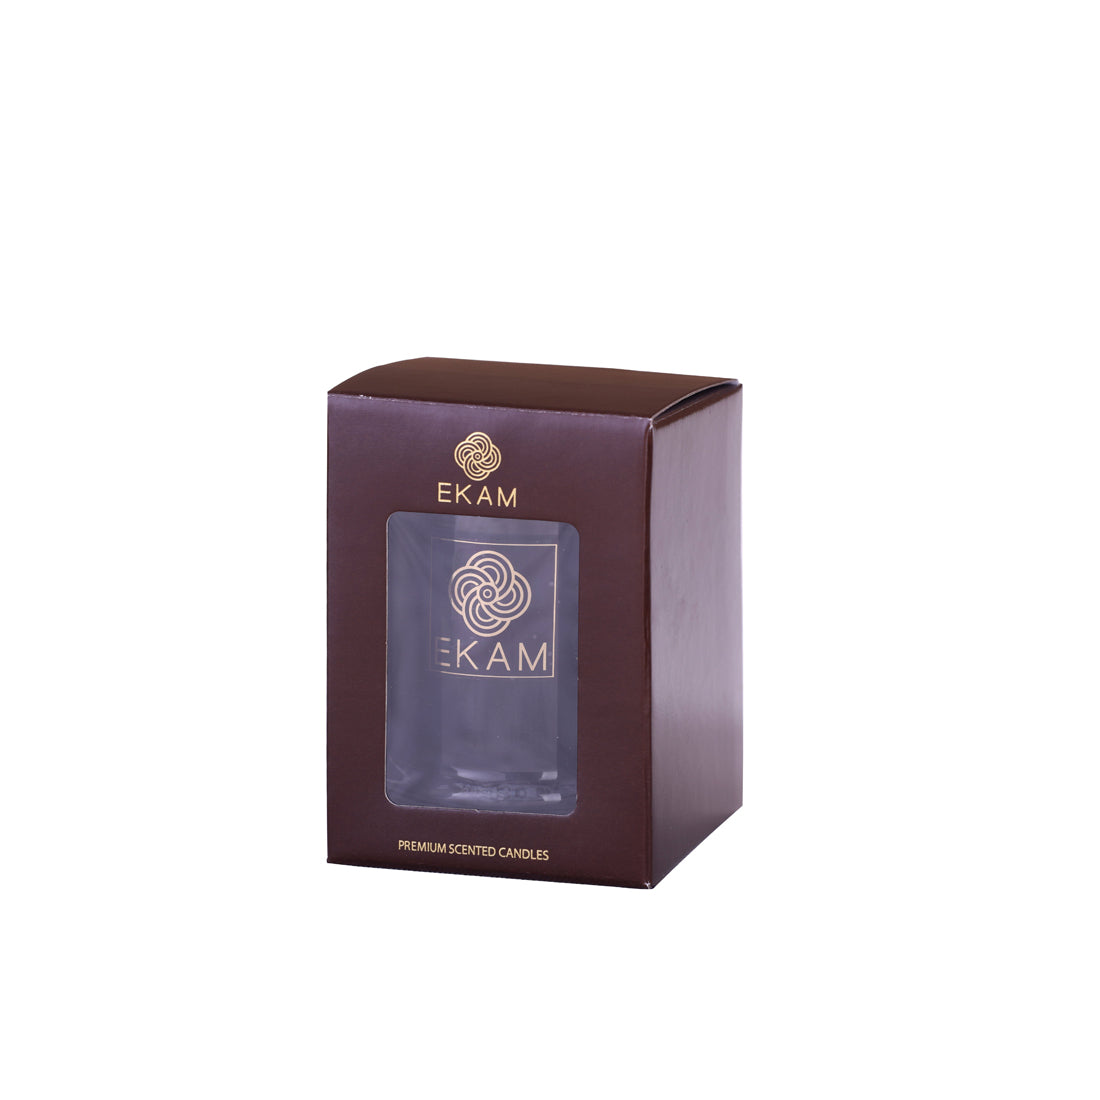 Ekam's Royal oudh Scented Candle | Greymode candles